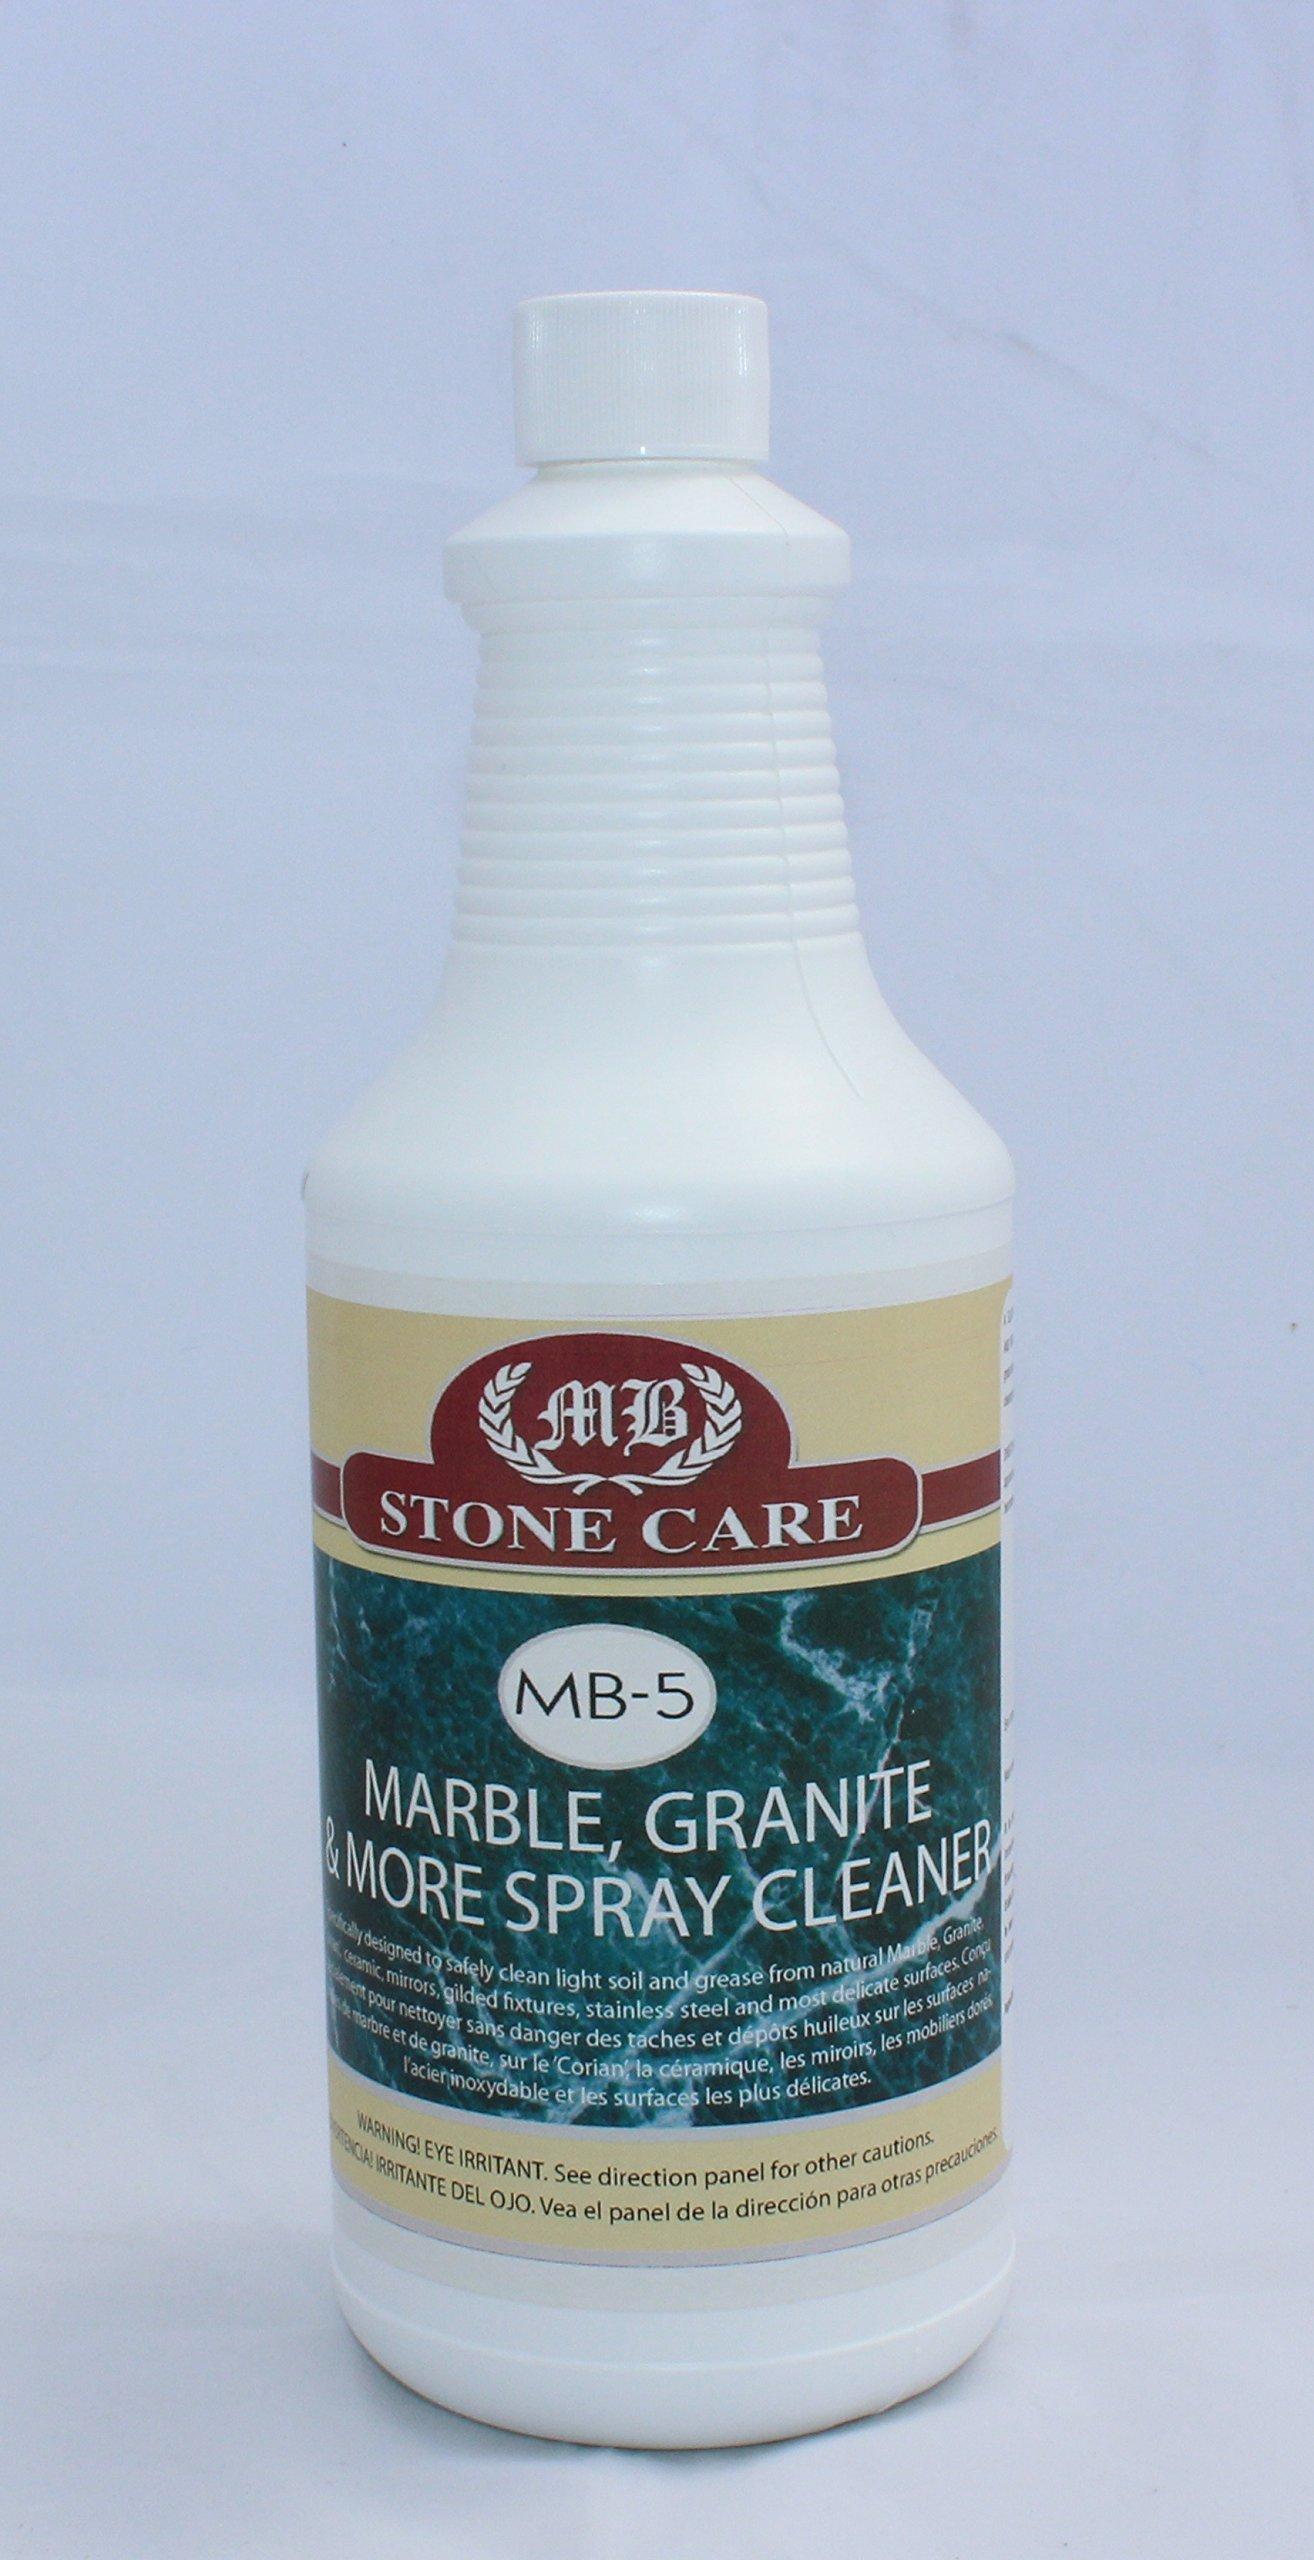 MB Stone Care MB-5 Marble Granite and More Spray Cleaner 1-Quart